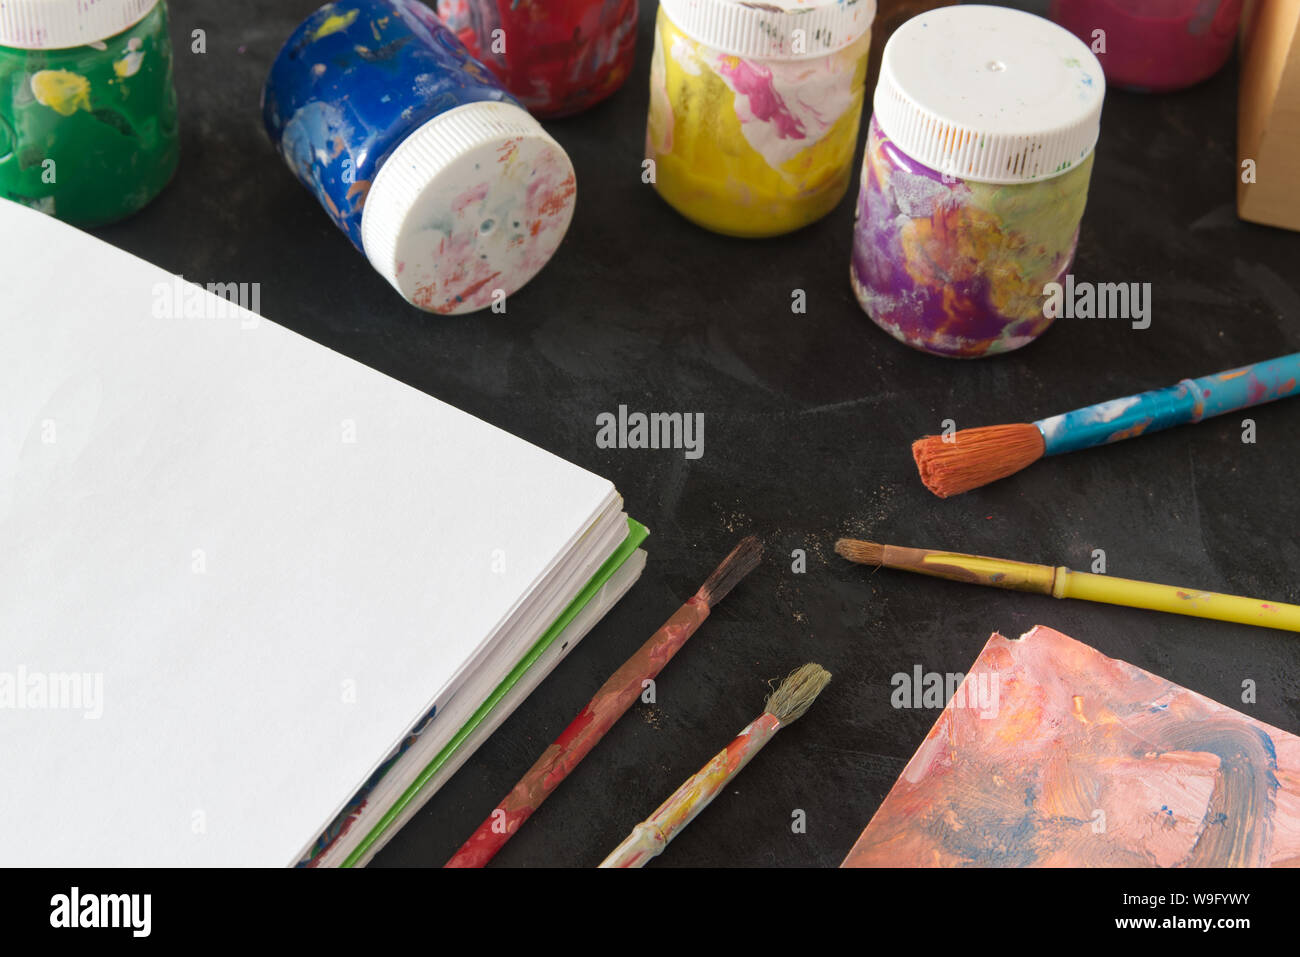 Painting artist desktop in the studio. Some paintbrushes and material ready for an art lesson in a classroom. Empty copy space for Editor's text. Stock Photo